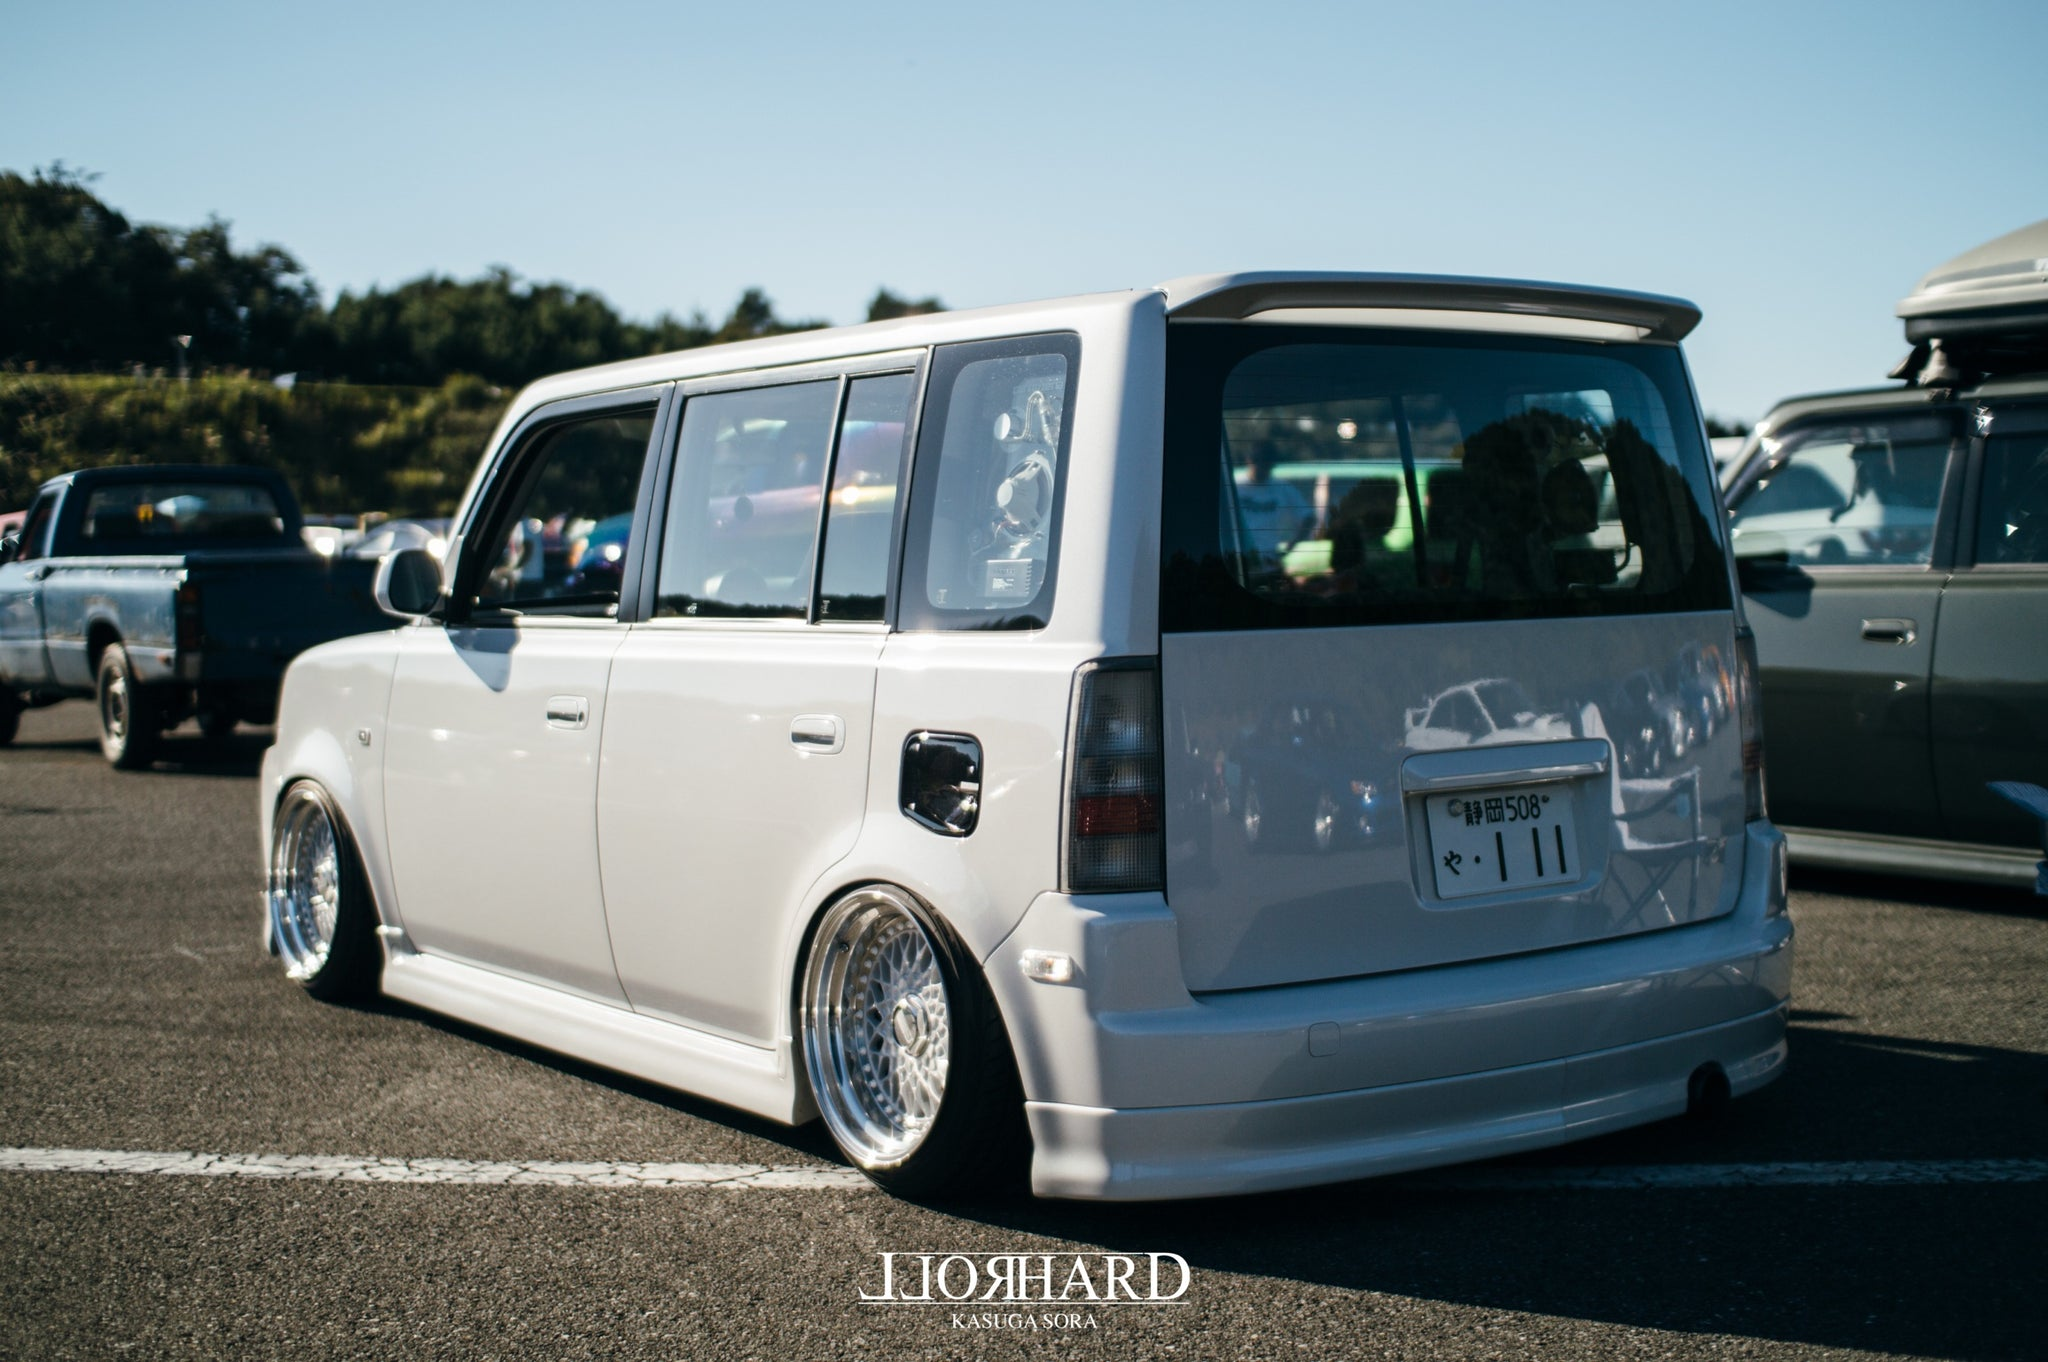 RollHard Event Coverage: 北米野郎 Event, Japan, Tochigi prefecture, RollHard Event Coverage - Japanese Car Scene, RollHard Japan, Modified Cars, Modified car blog, event coverage, BBS, Rotiform, JDM scene